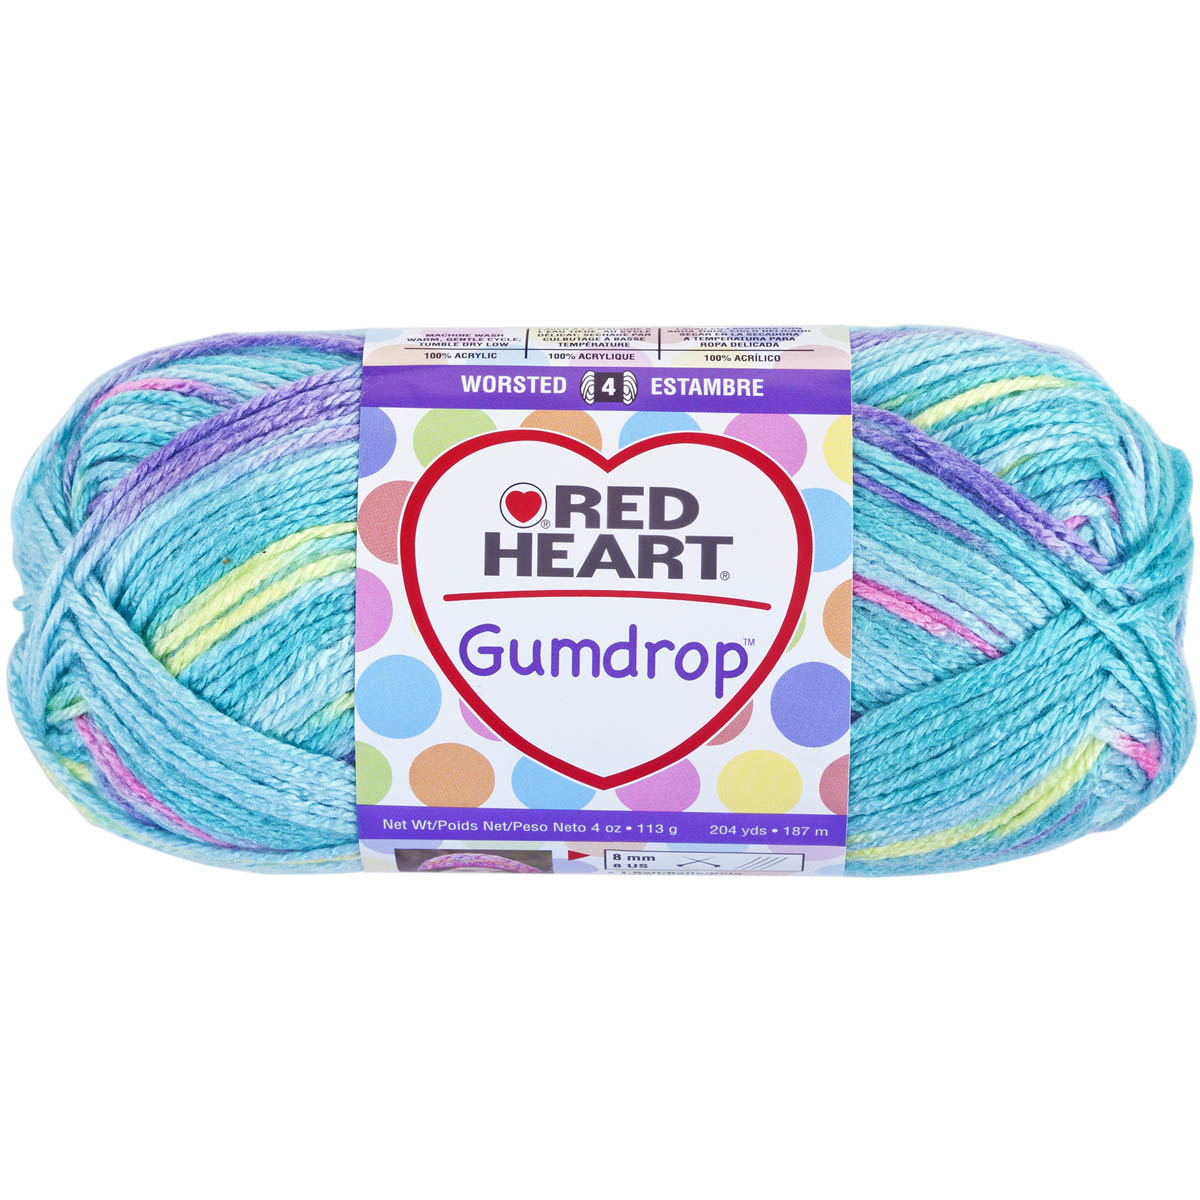 Coats Yarn Red Heart Gumdrop Yarn, Smoothie Multi-Colored